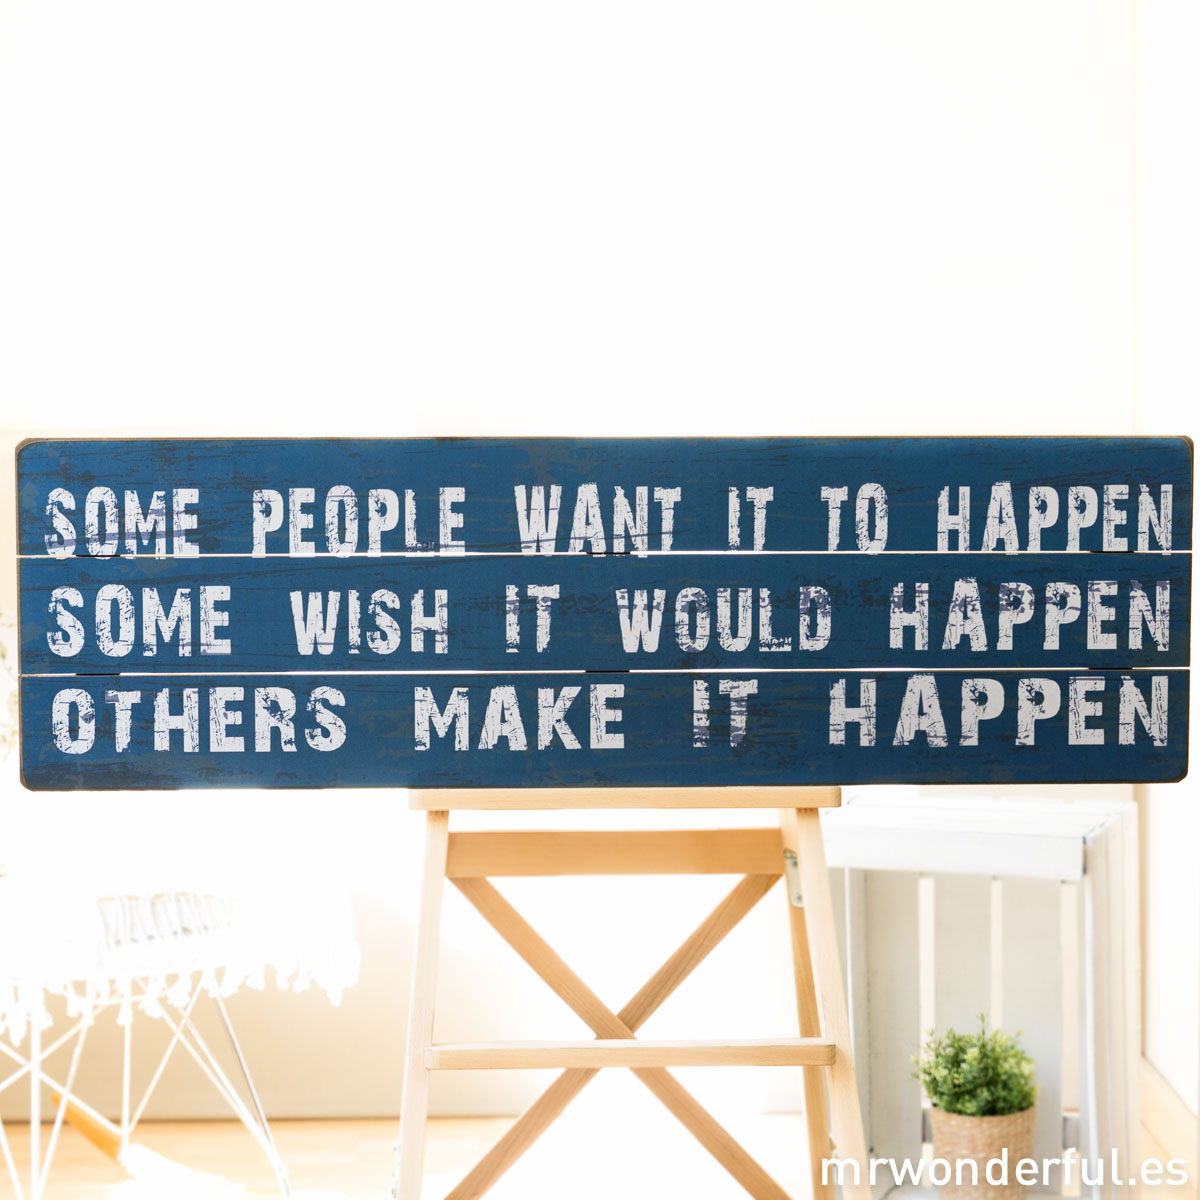 mrwonderful_GI6008_1_letrero-madera-grande_make-it-happen-1